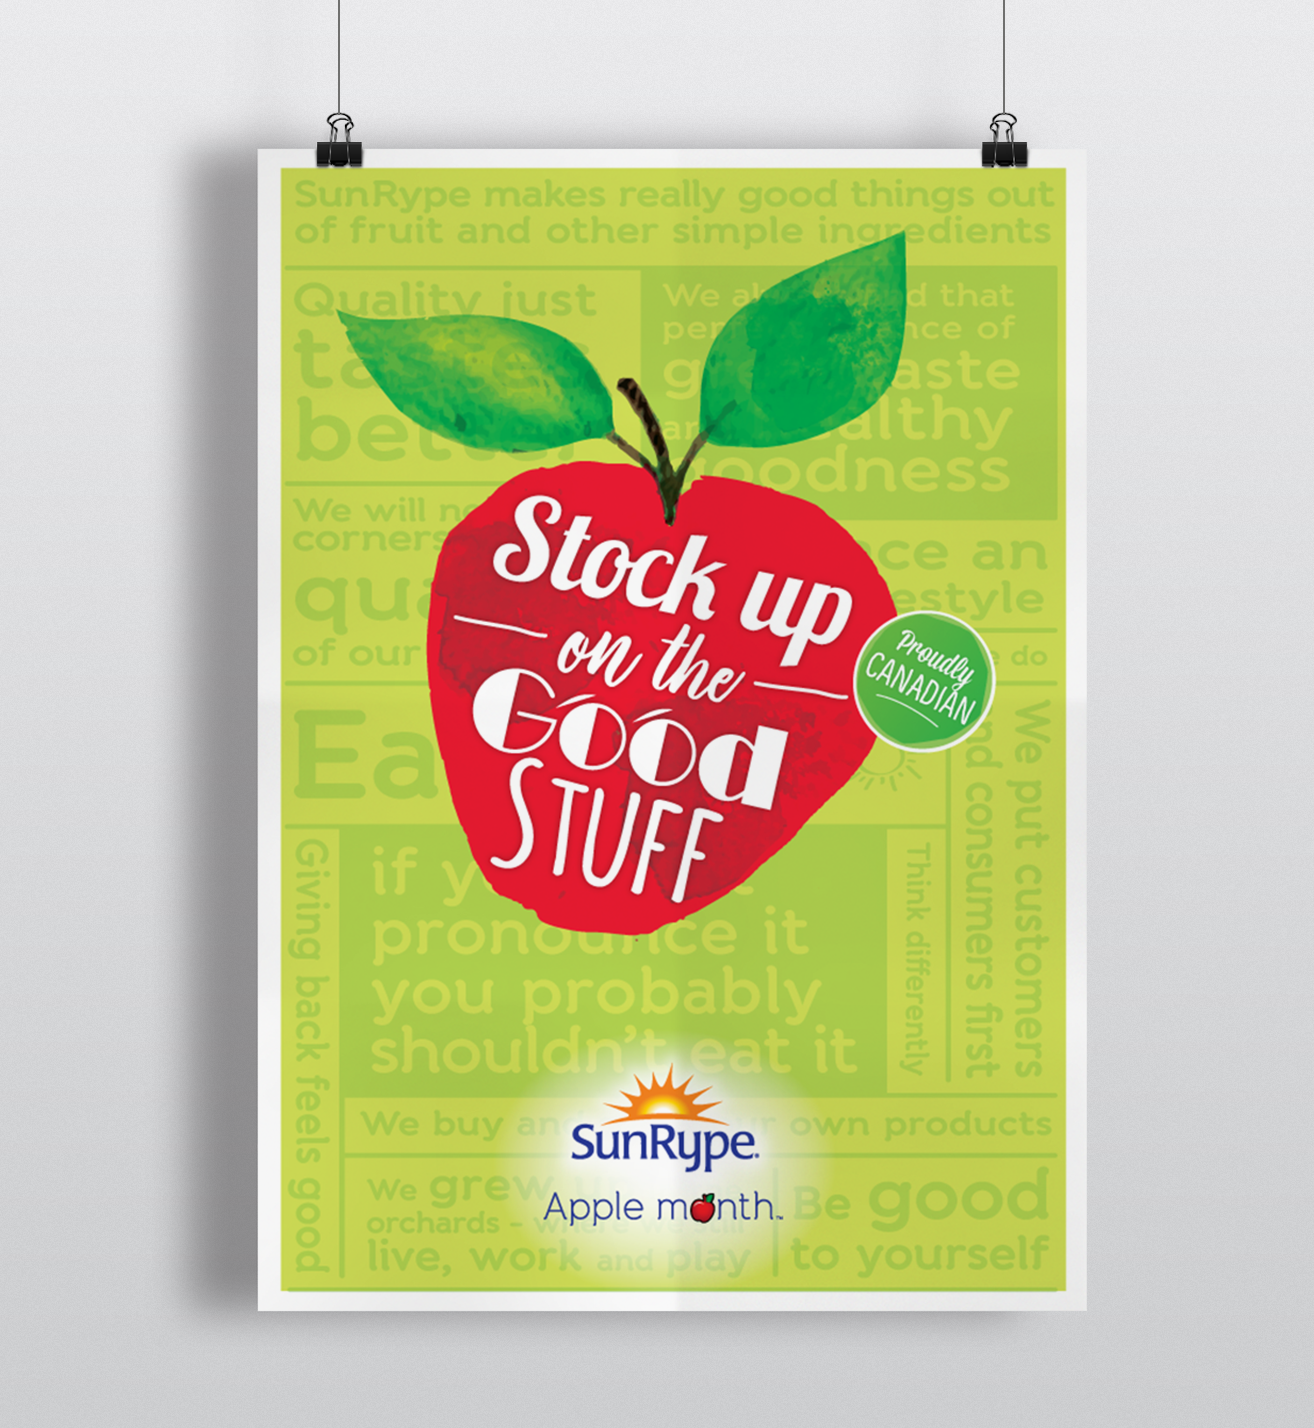 sunrype_applemonth_poster.png